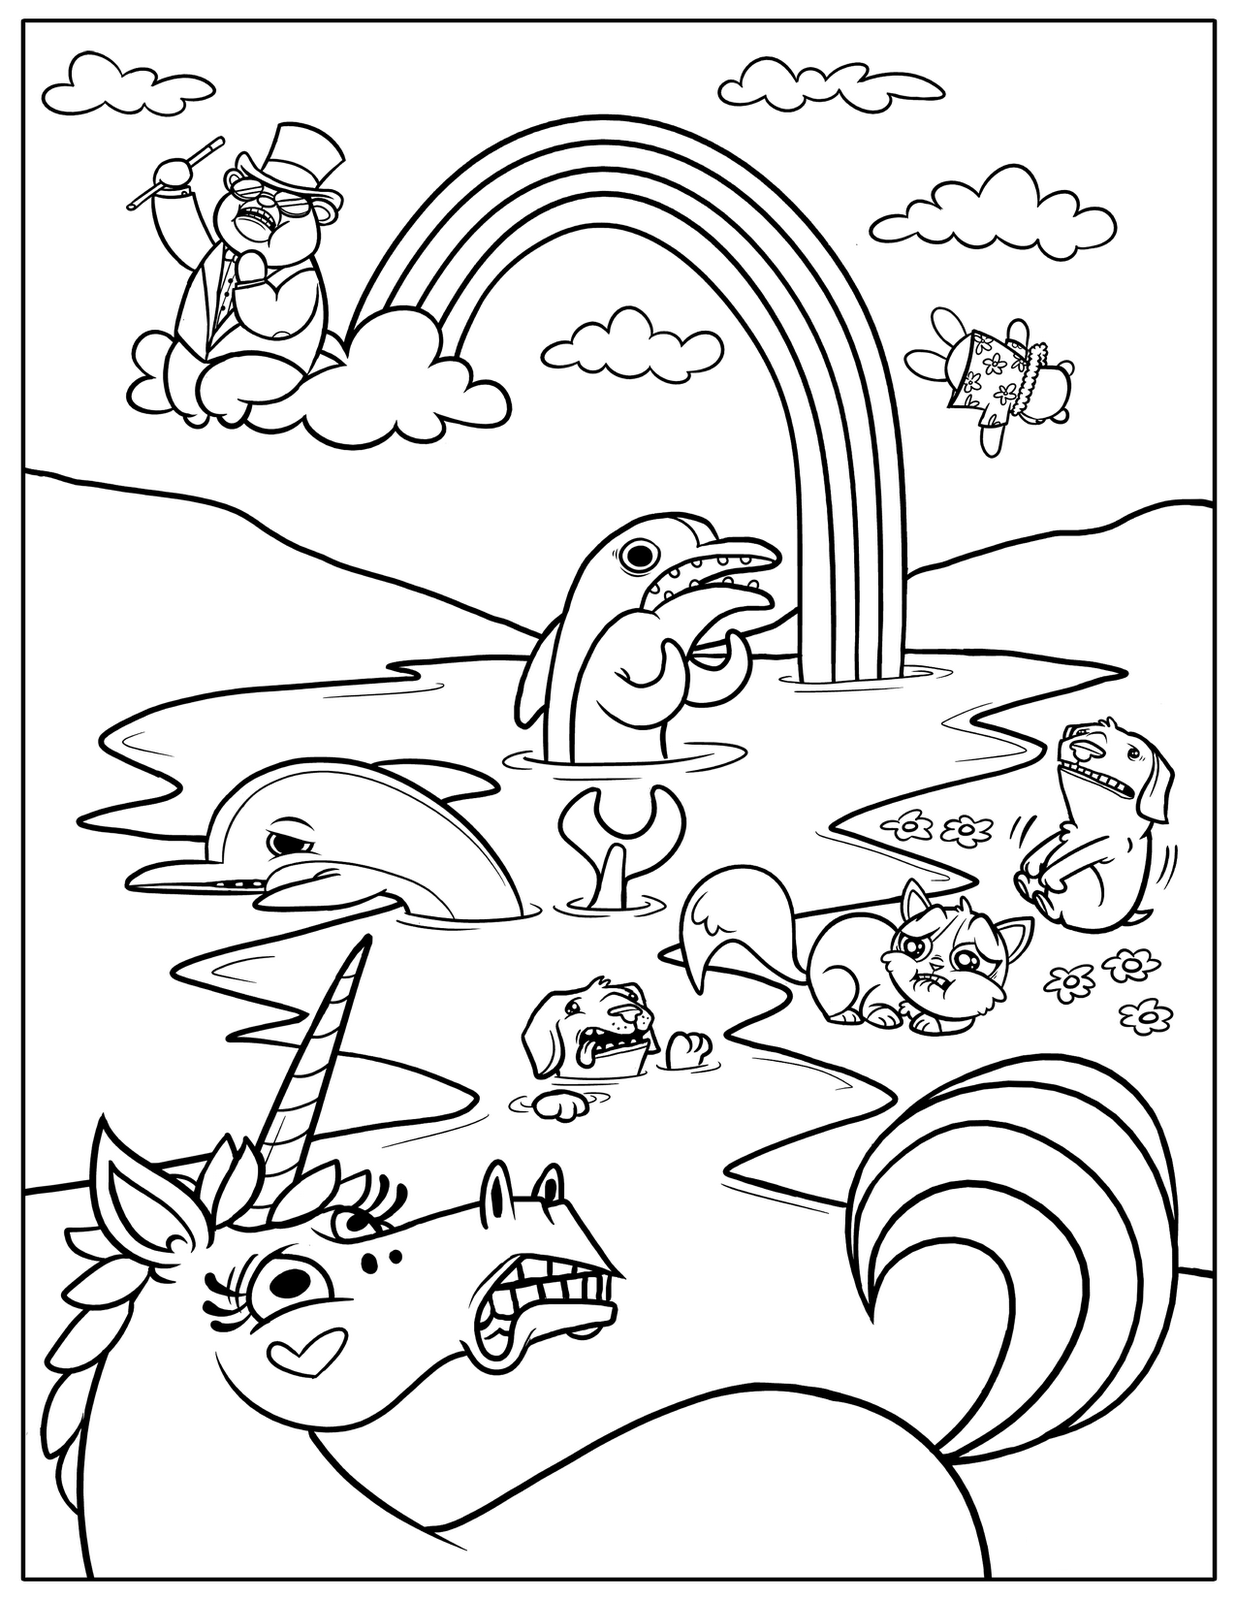 Free printable rainbow coloring pages for kids for Coloring pages t